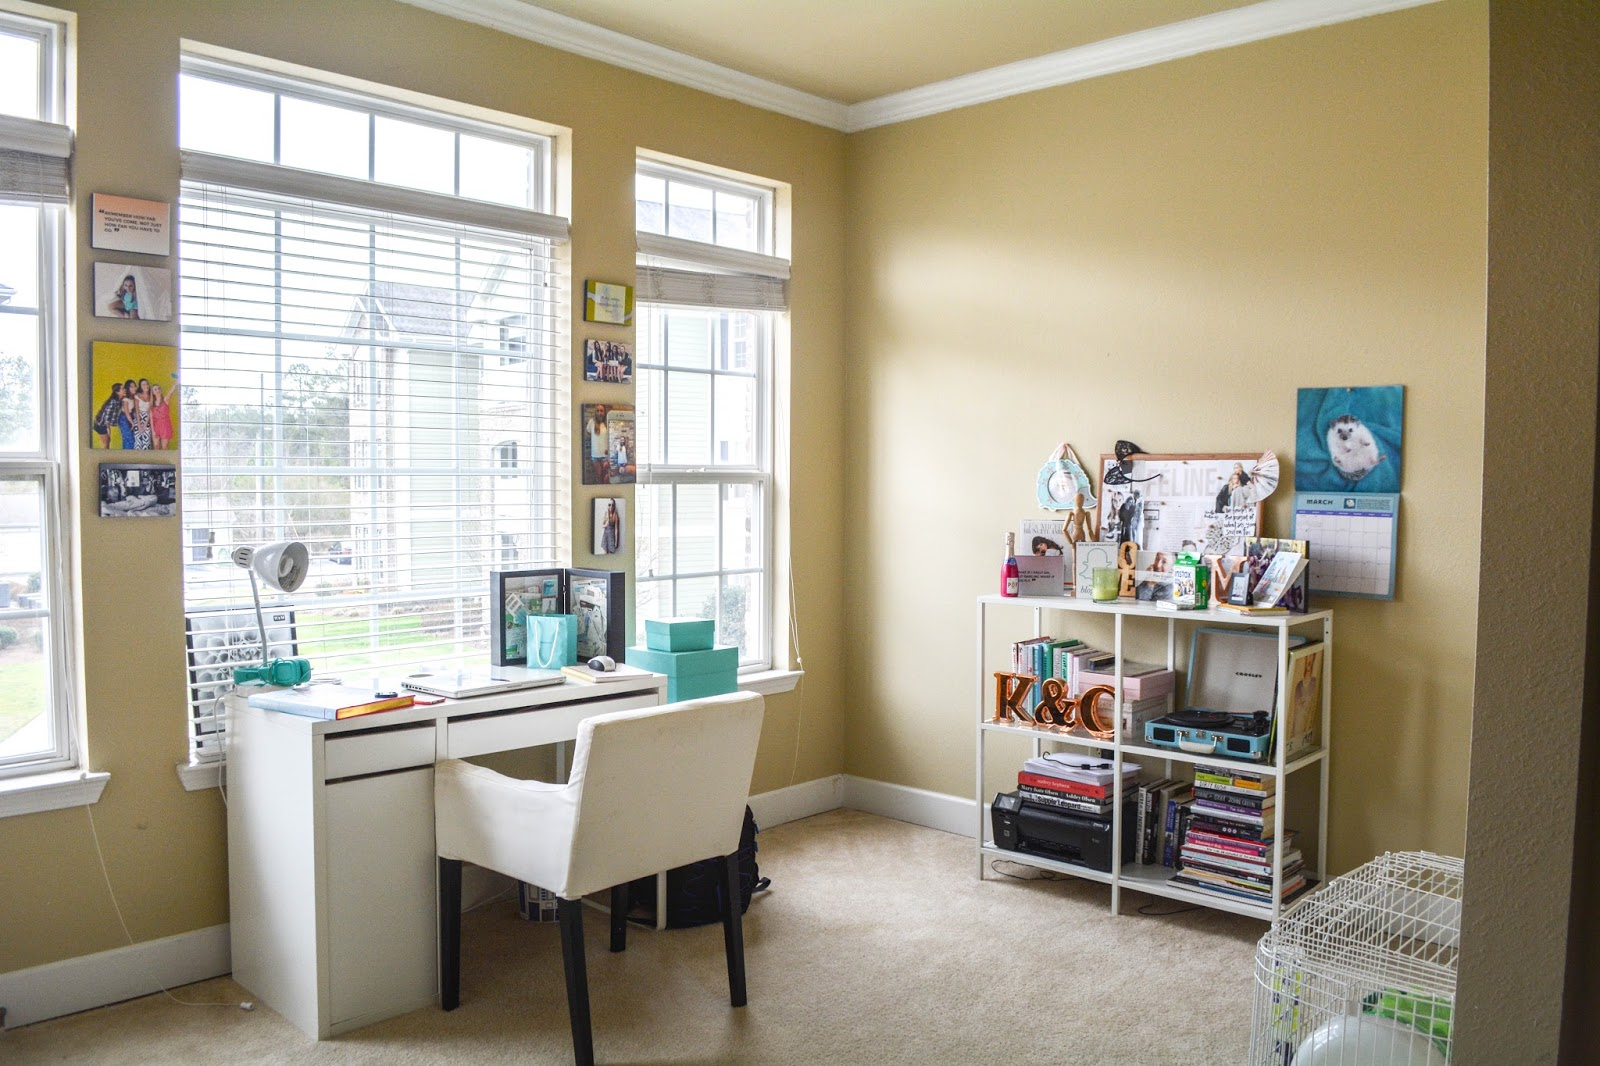 Apartment Tour: Sunroom/Office